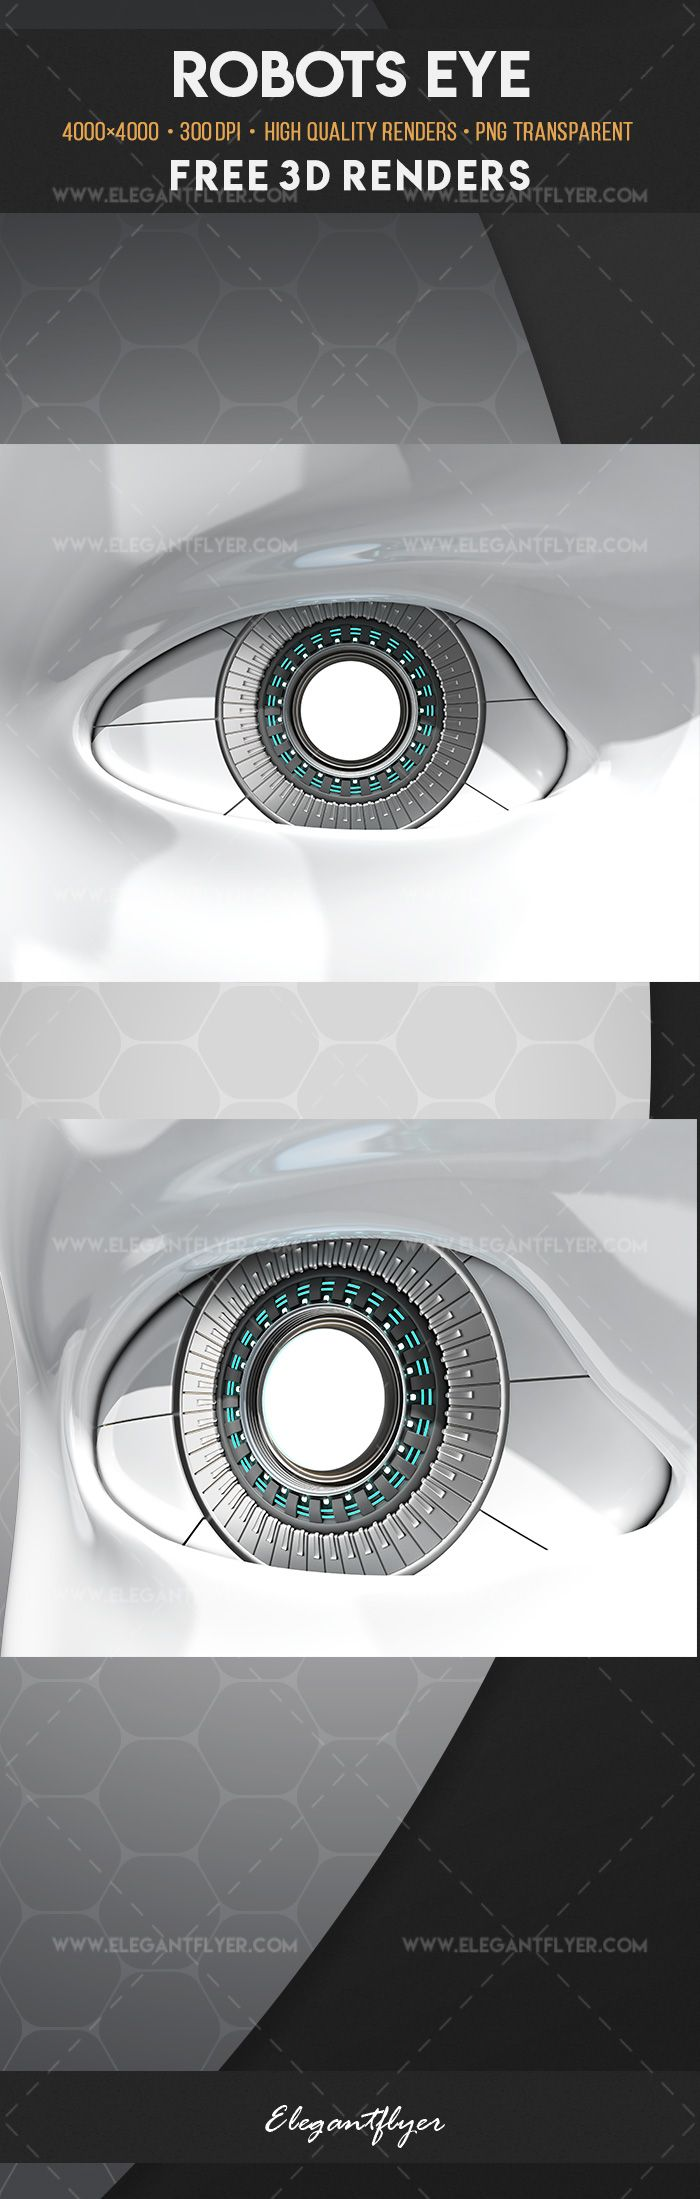 Robots Eye – Free 3d Render Templates